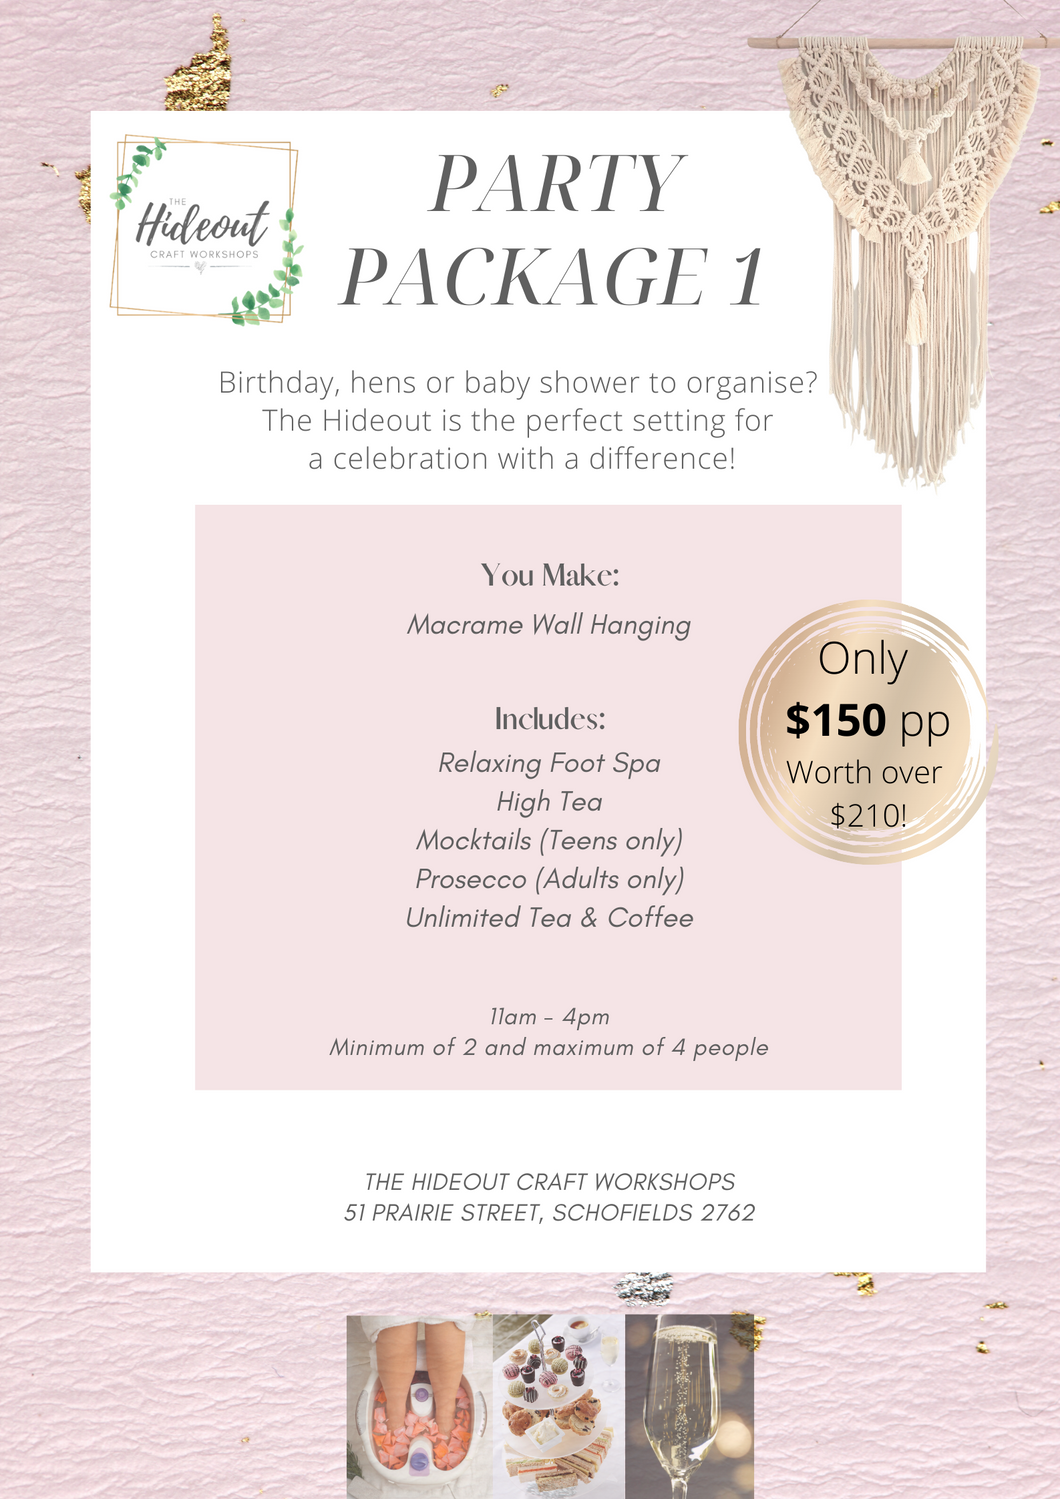 Party Package 1